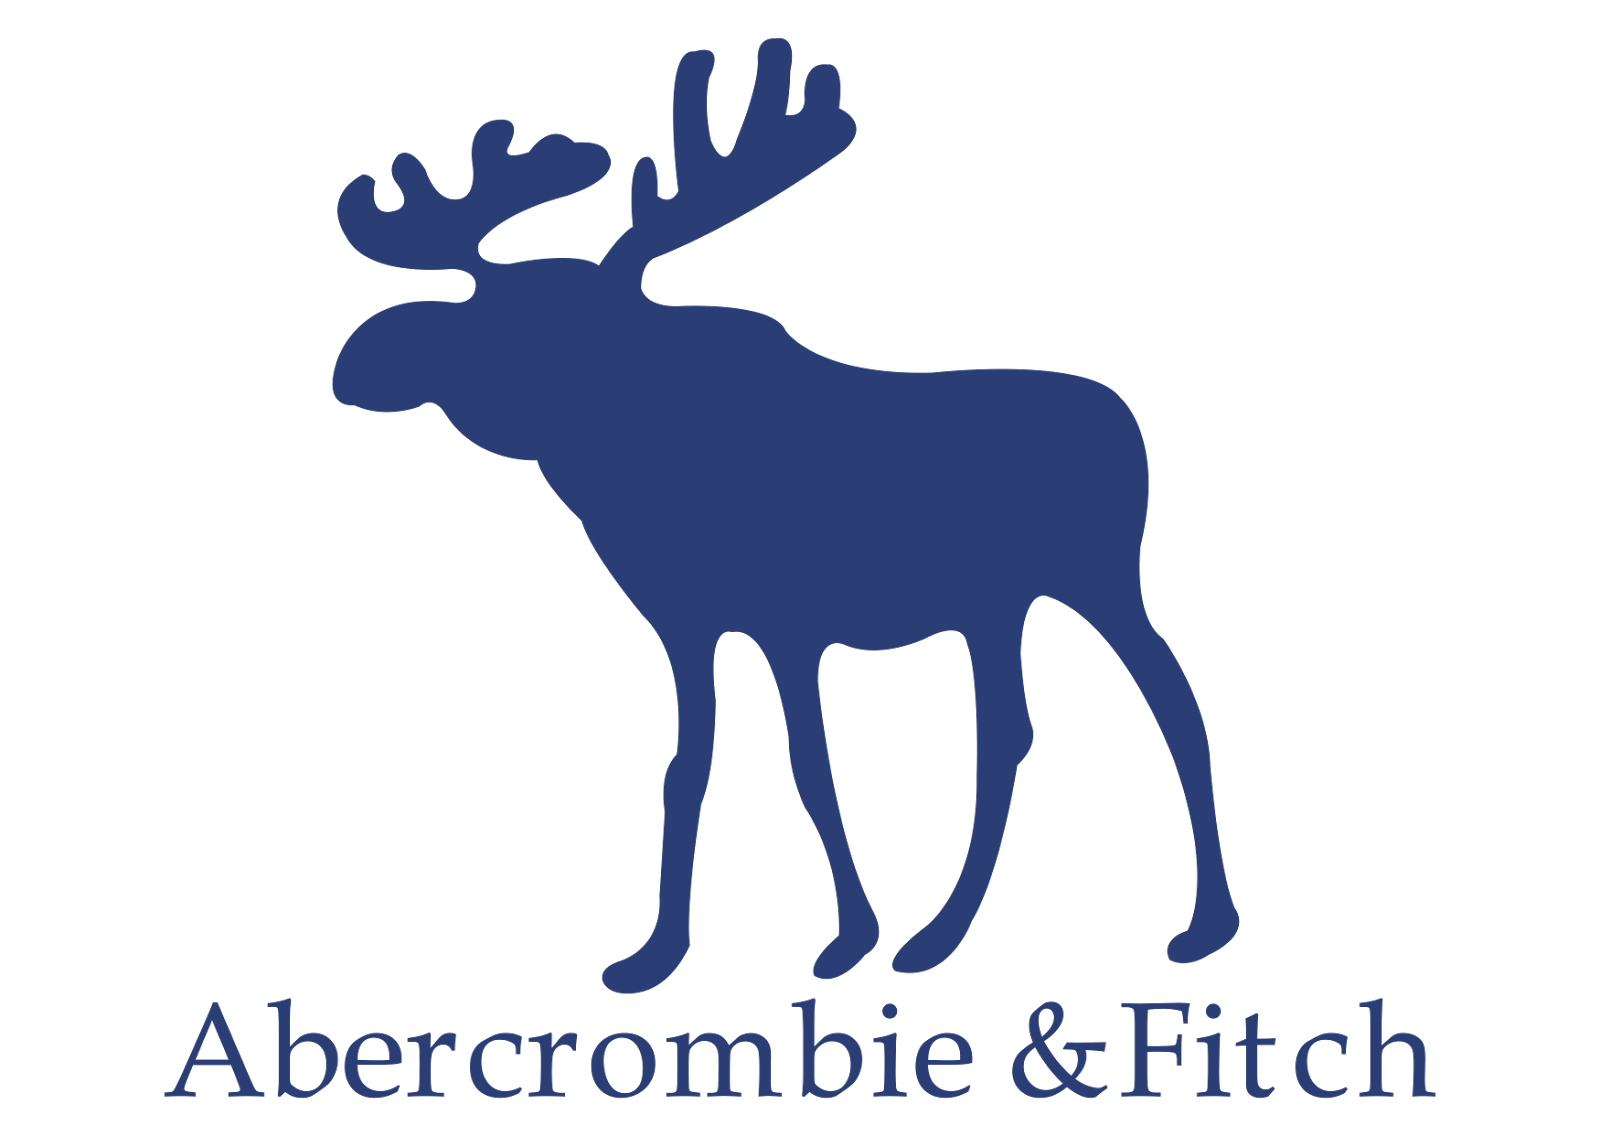 abercrombie and fitch logo vector vector logo download